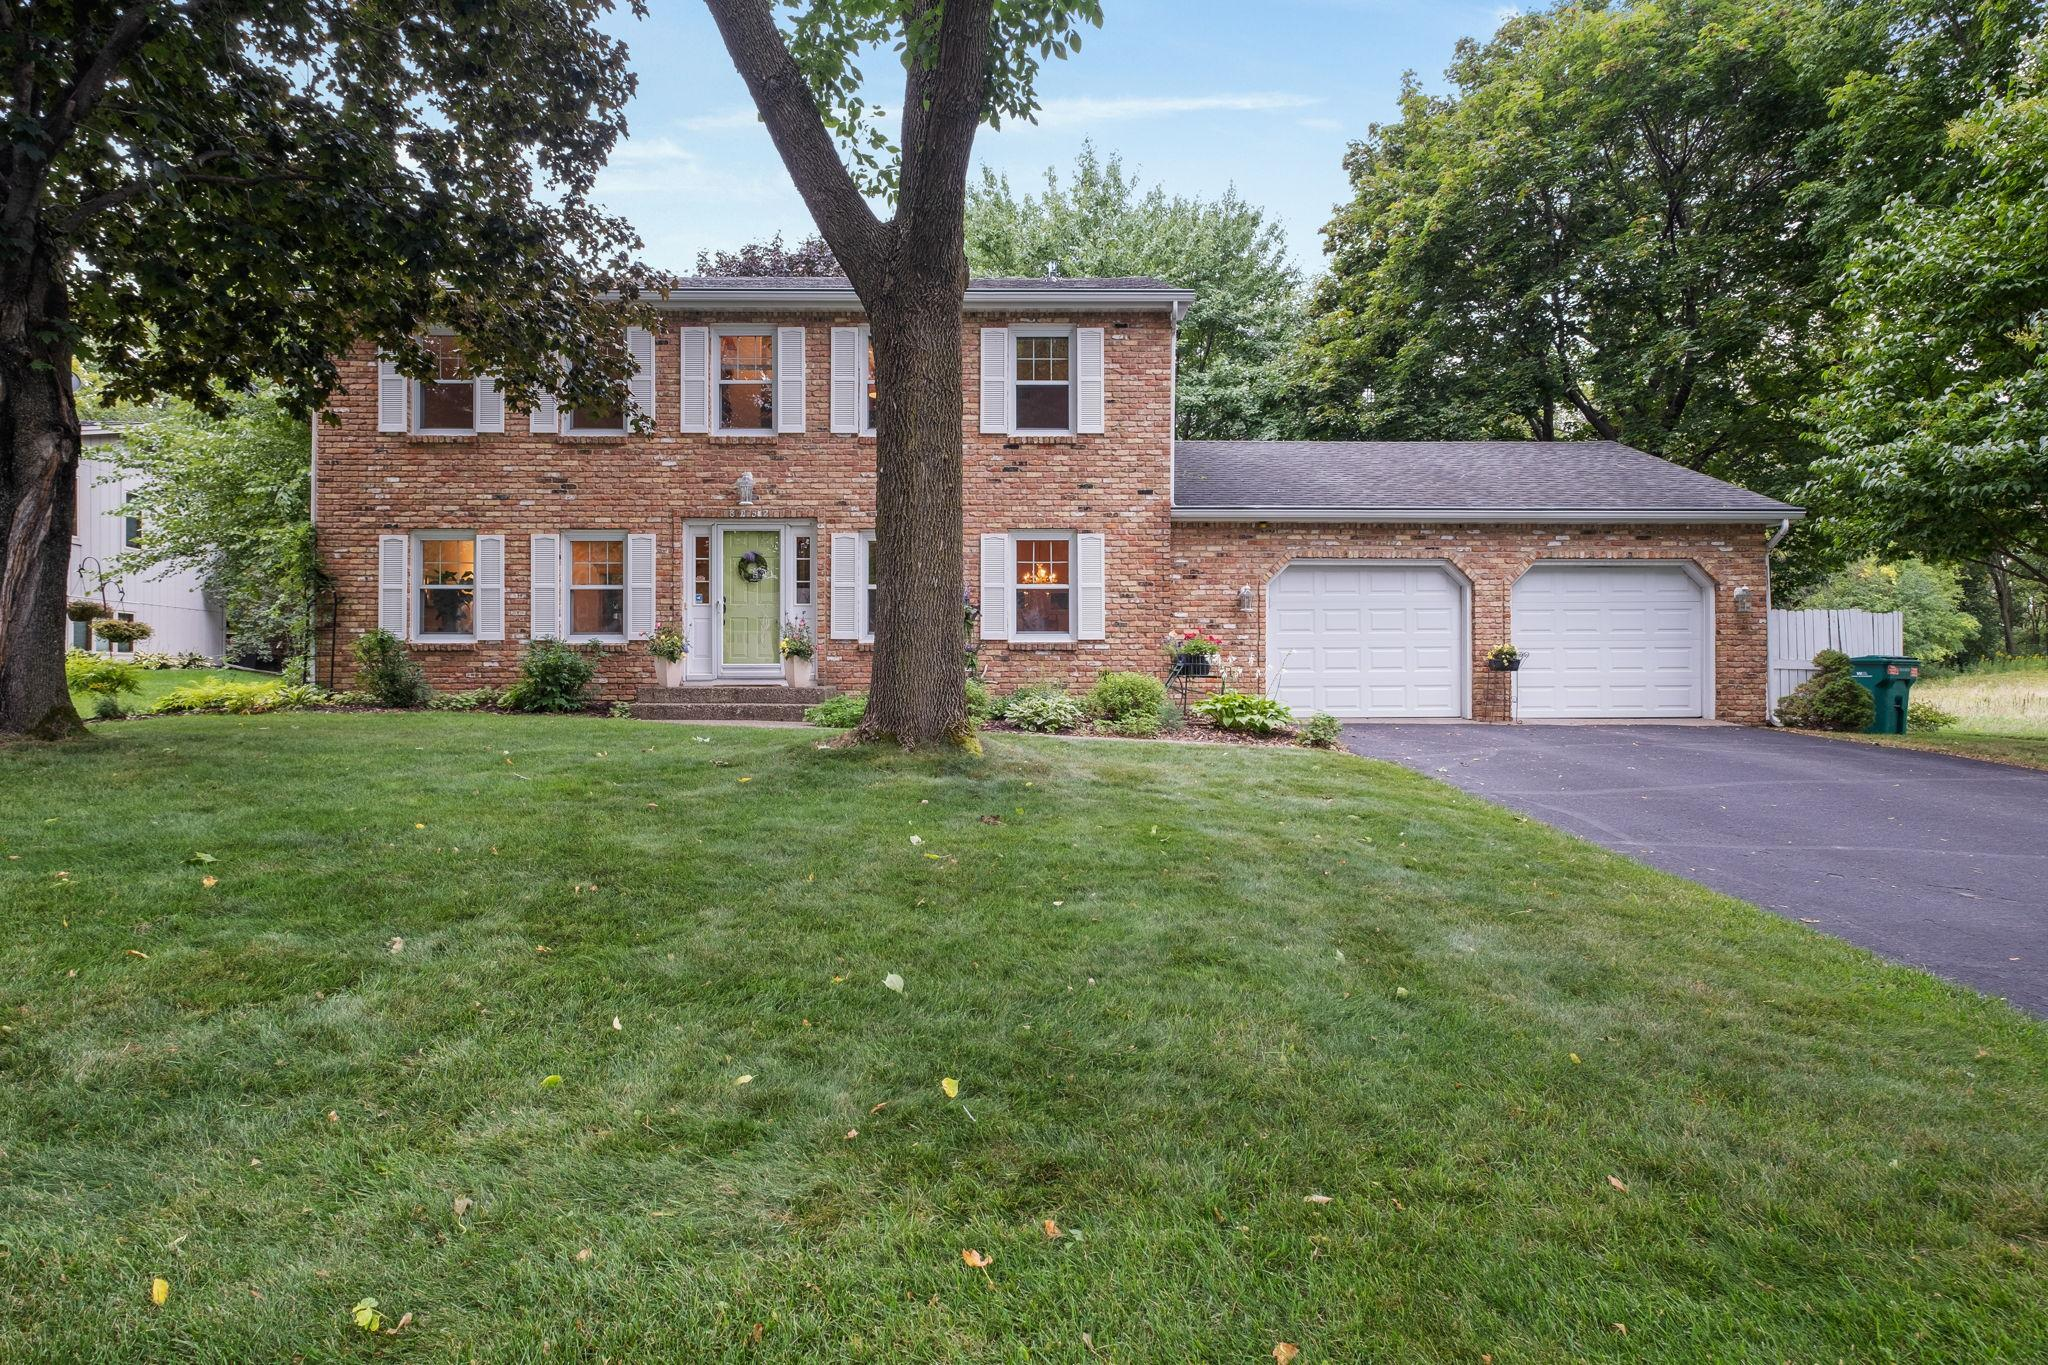 8262 Rhode Island Avenue S Property Photo - Bloomington, MN real estate listing